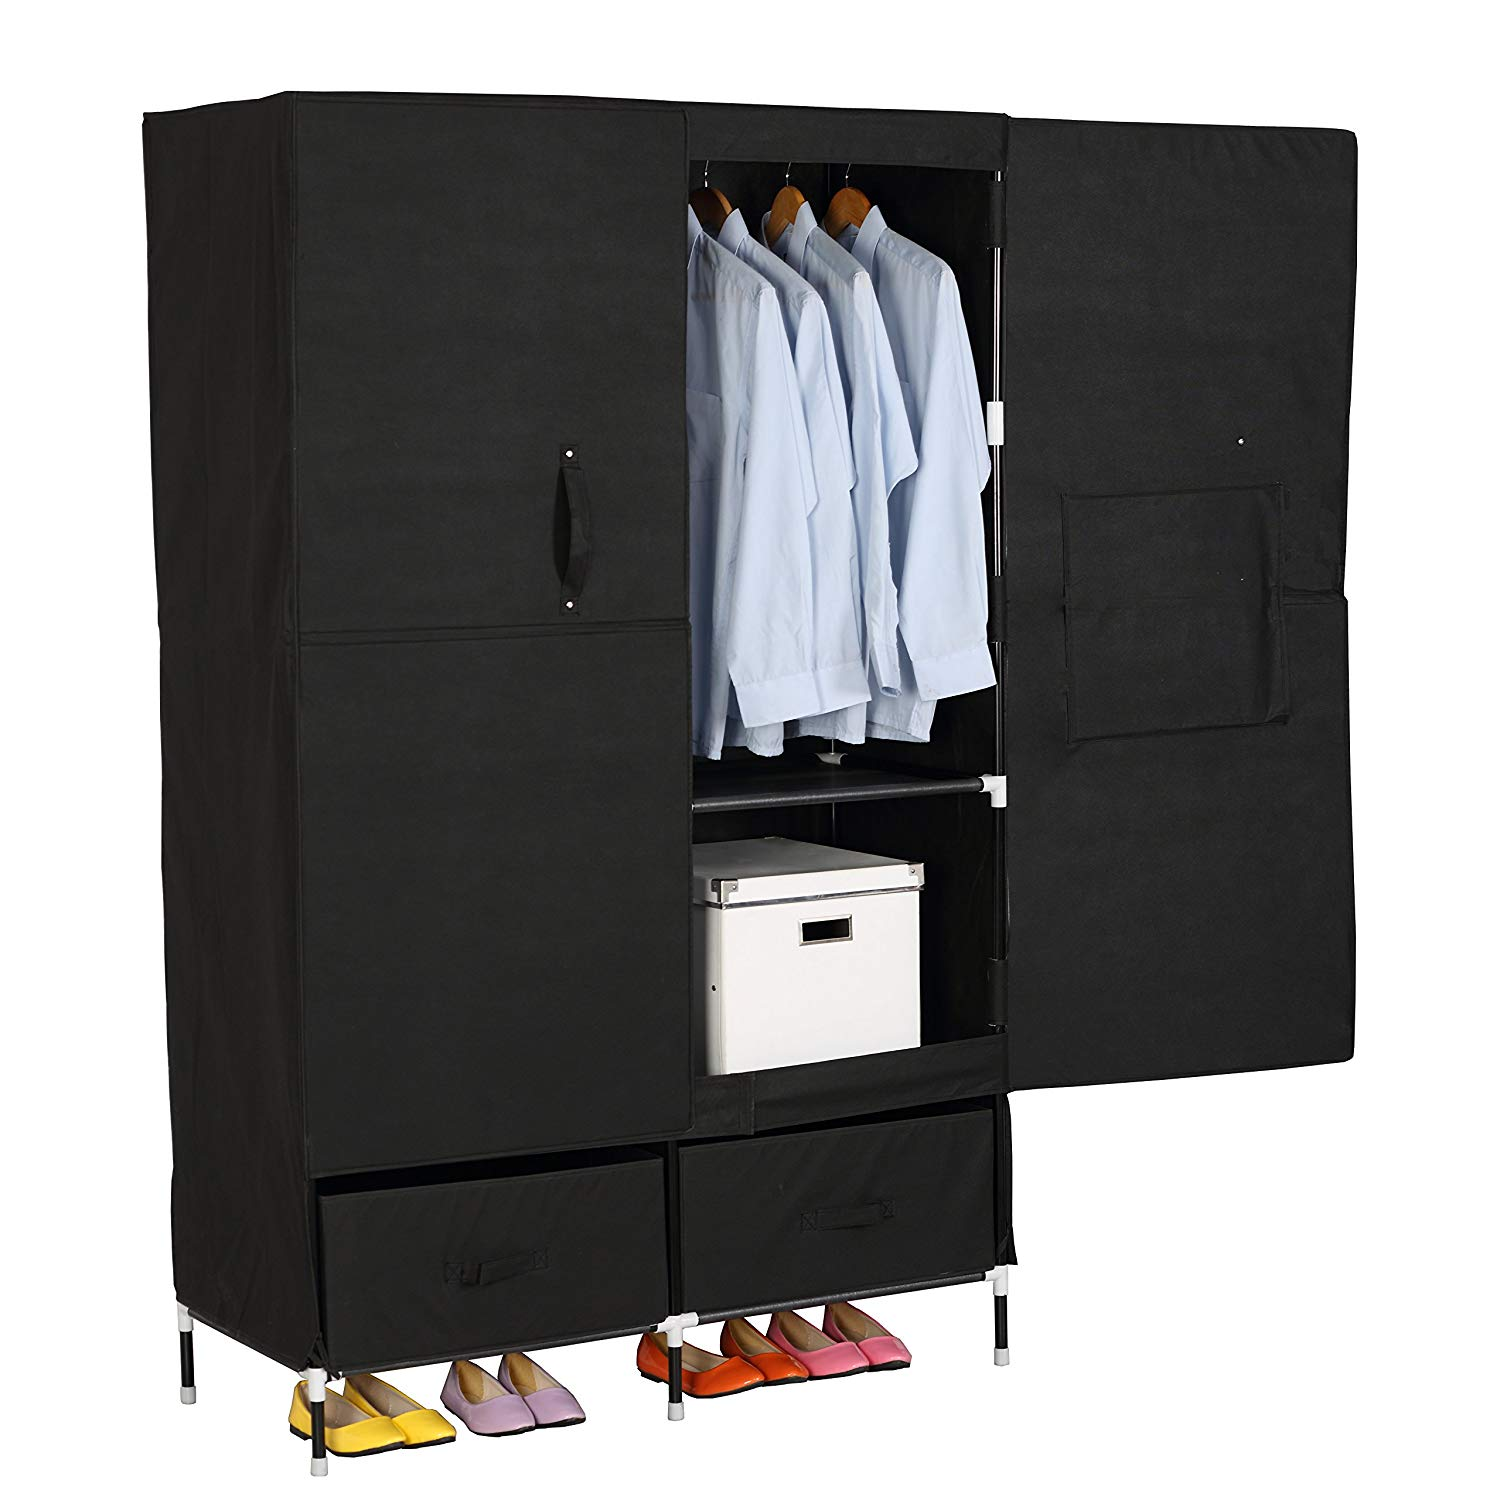 Portable Clothes Closet Wardrobe Storage With 2 Drawer Cloth Organizer With Magnet Doors Steel Shoe Rack 6 Shelves